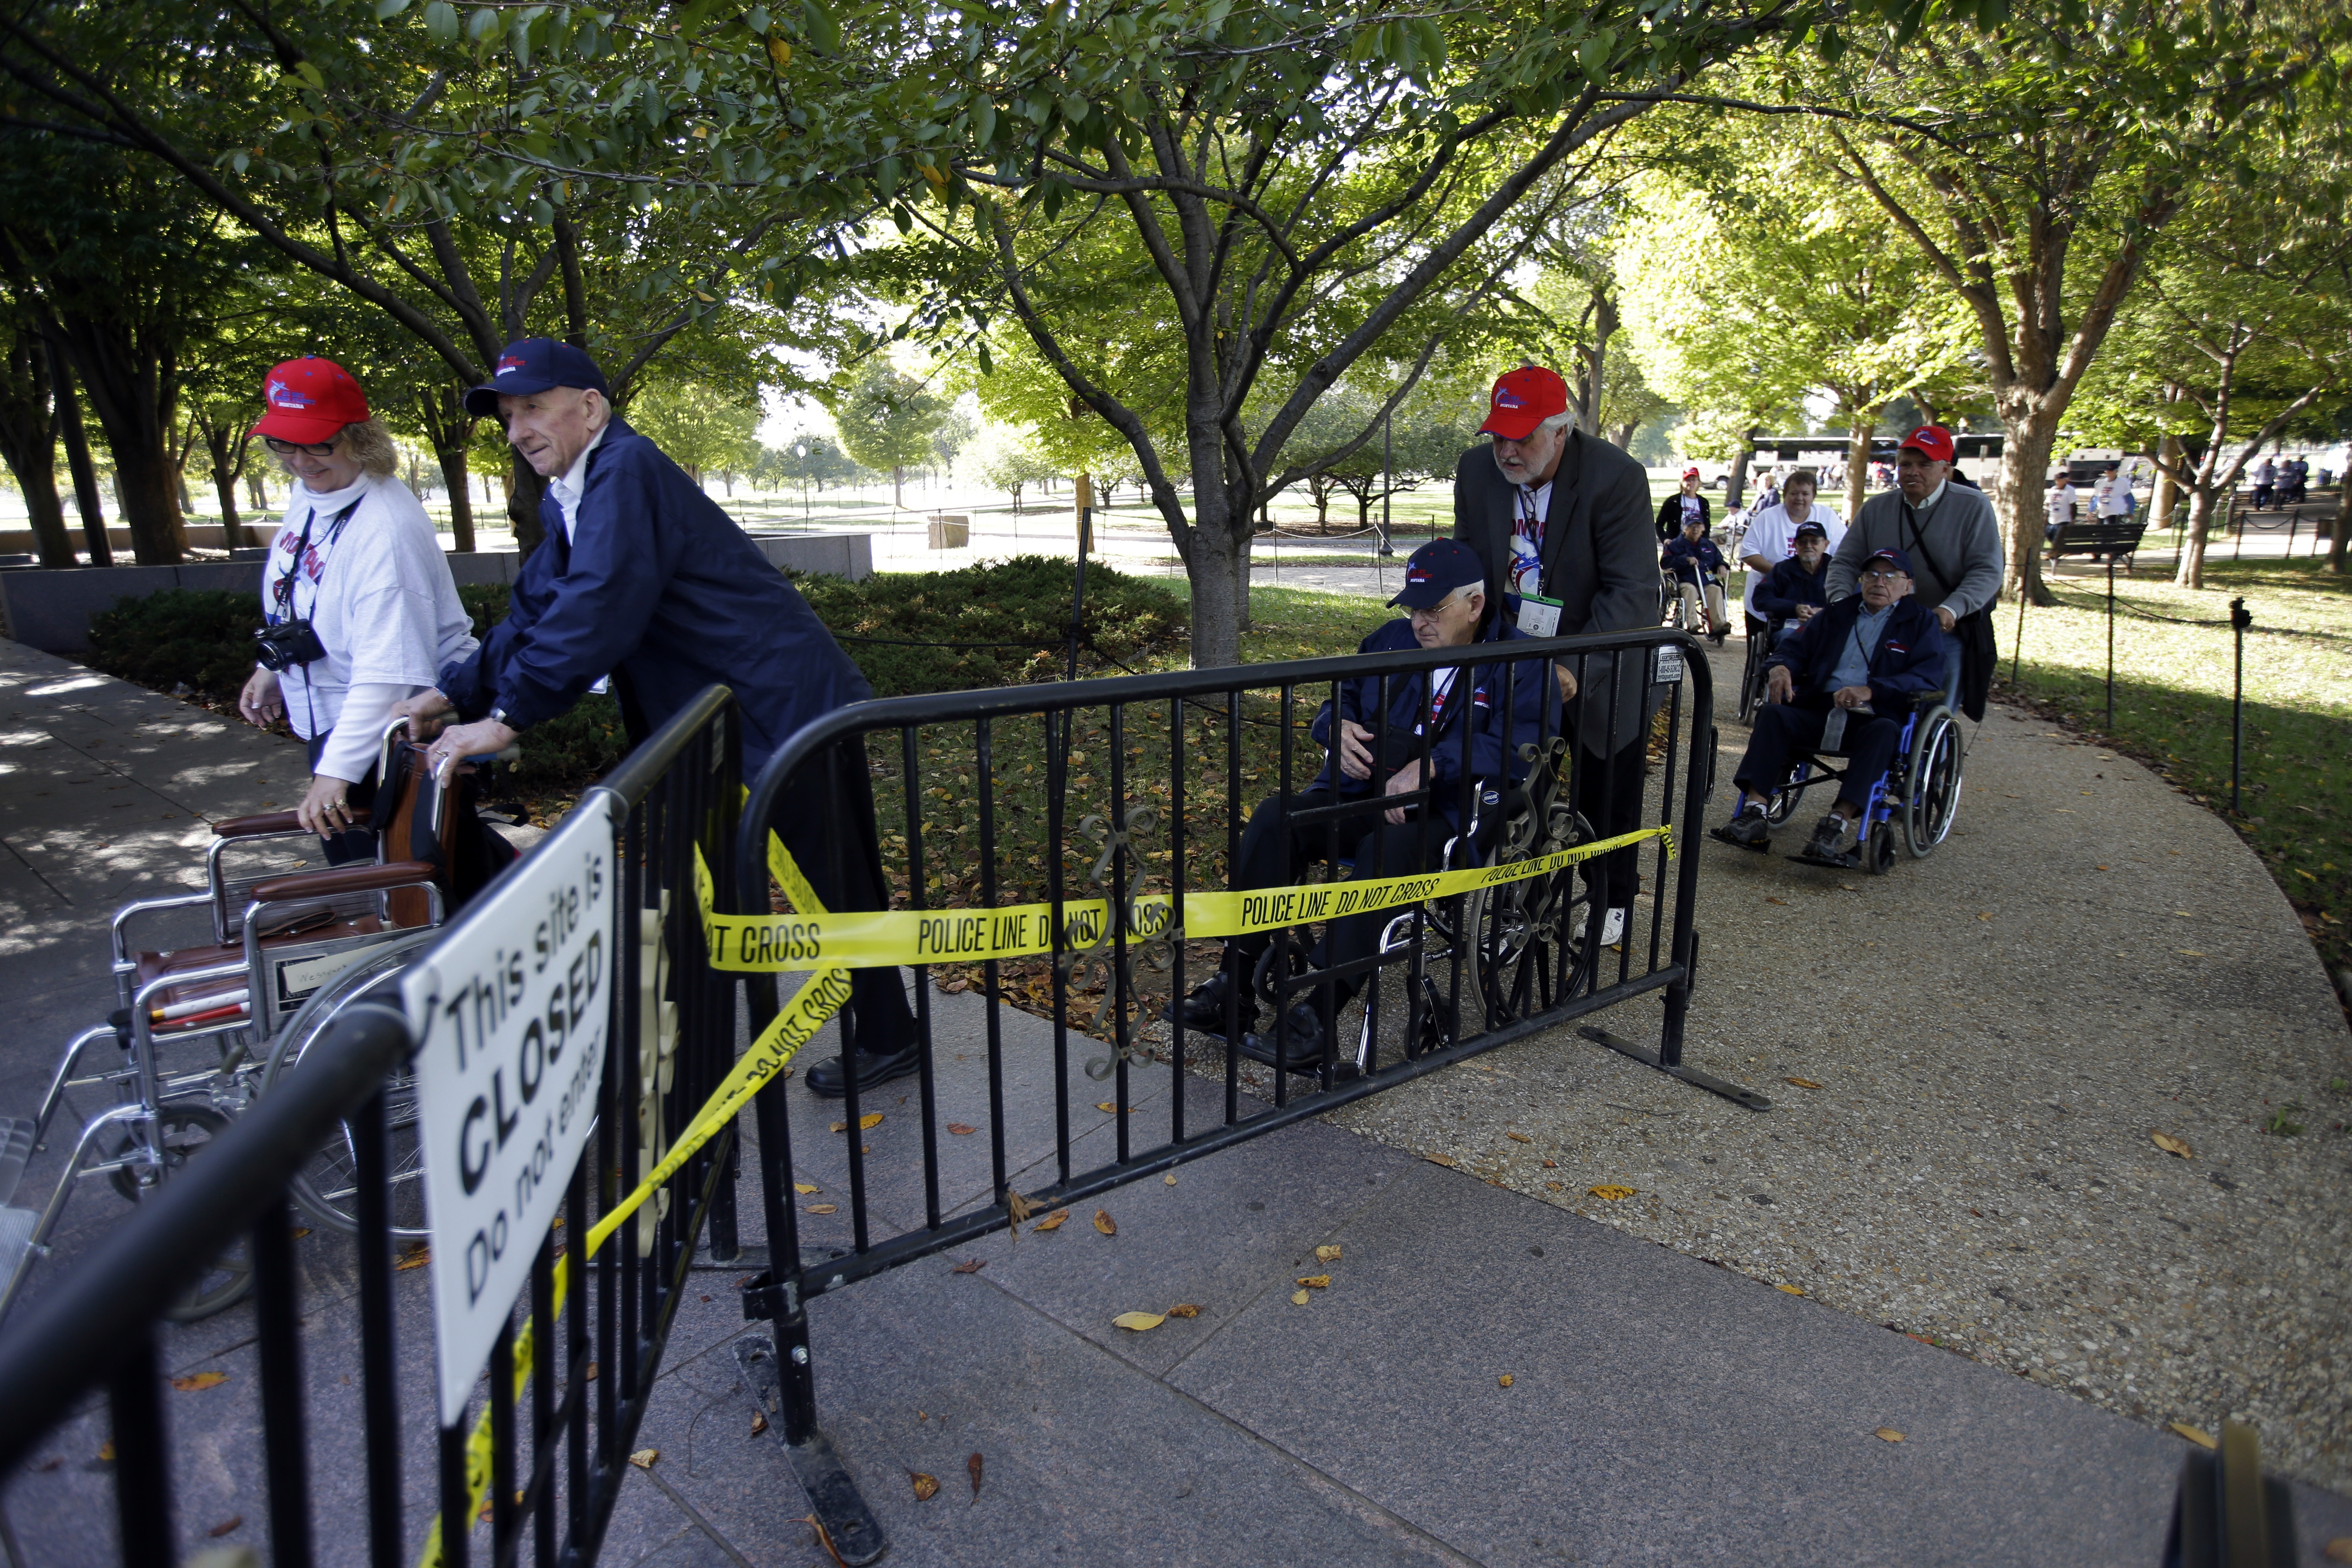 World War II veterans from Montana skirted barricades to visit the Franklin Delano Roosevelt Memorial earlier this week in Washington. Action to fund the government means the barriers will come down, at least until the money runs out in January.